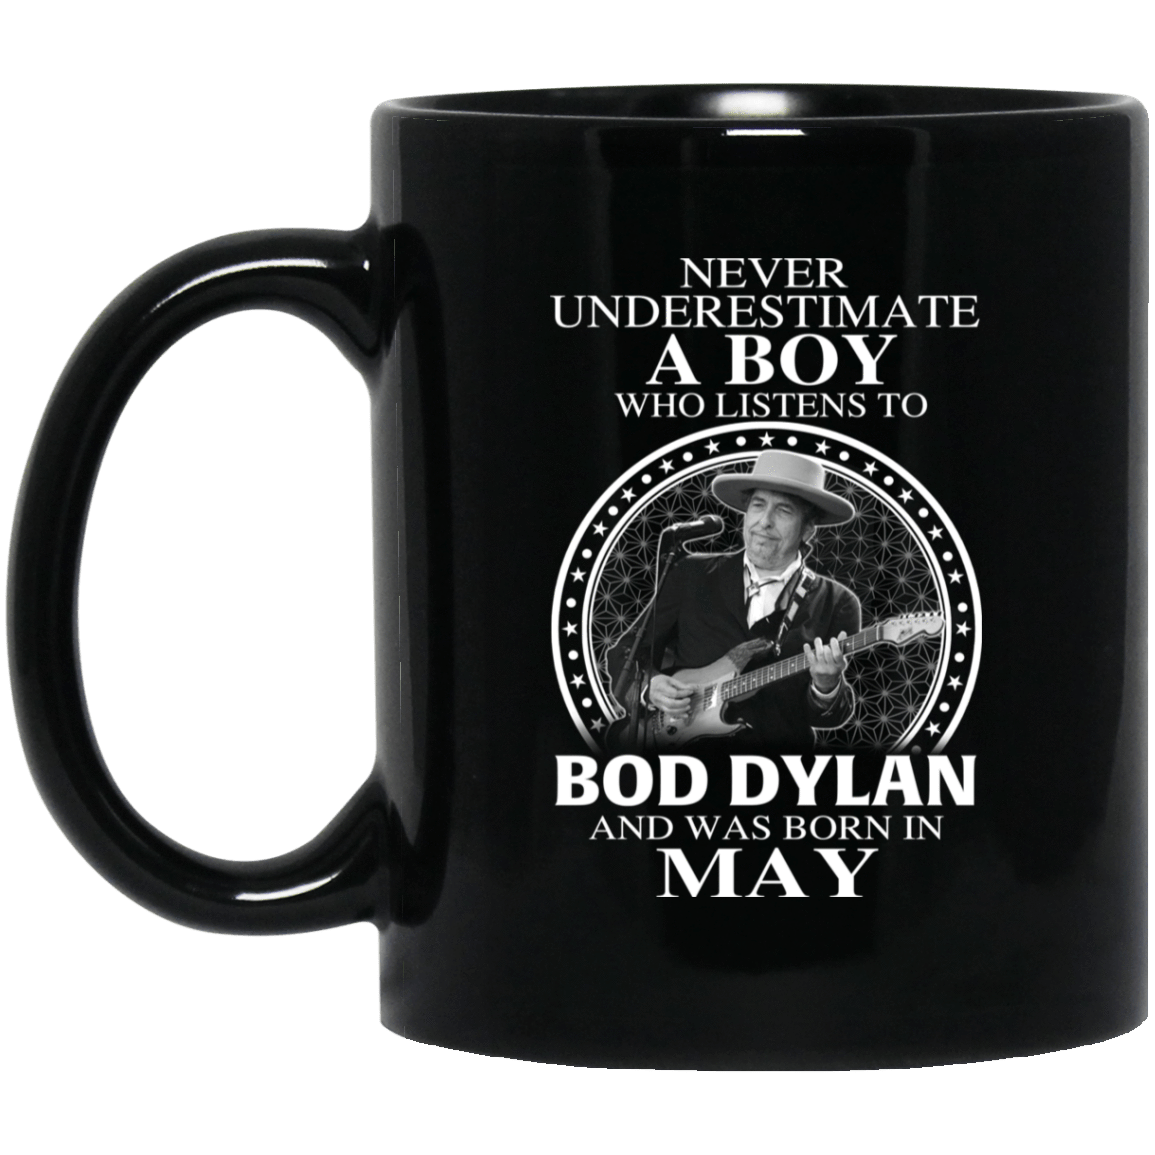 A Boy Who Listens To Bob Dylan And Was Born In May Mug 1065-10181-76153786-49307 - Tee Ript